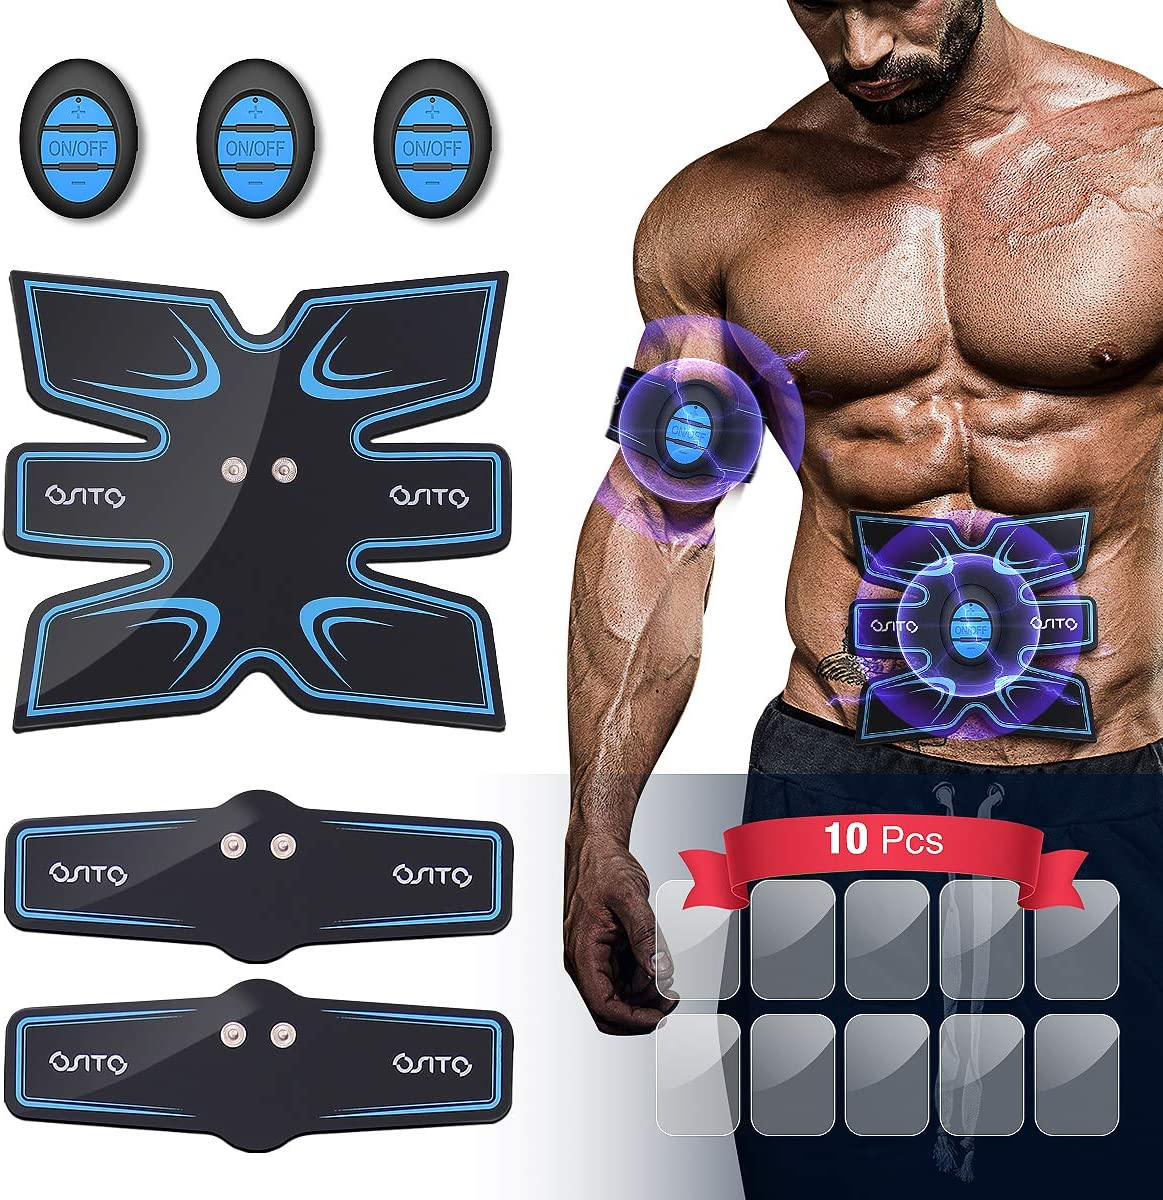 OSITO Muscle Trainer Intelligent Abs Stimulator Abdominal with 10 Extra Gel Pads, Abs Muscle Training Gear Muscle Toner for Men Women Portable Fitness Workout Home Equipment